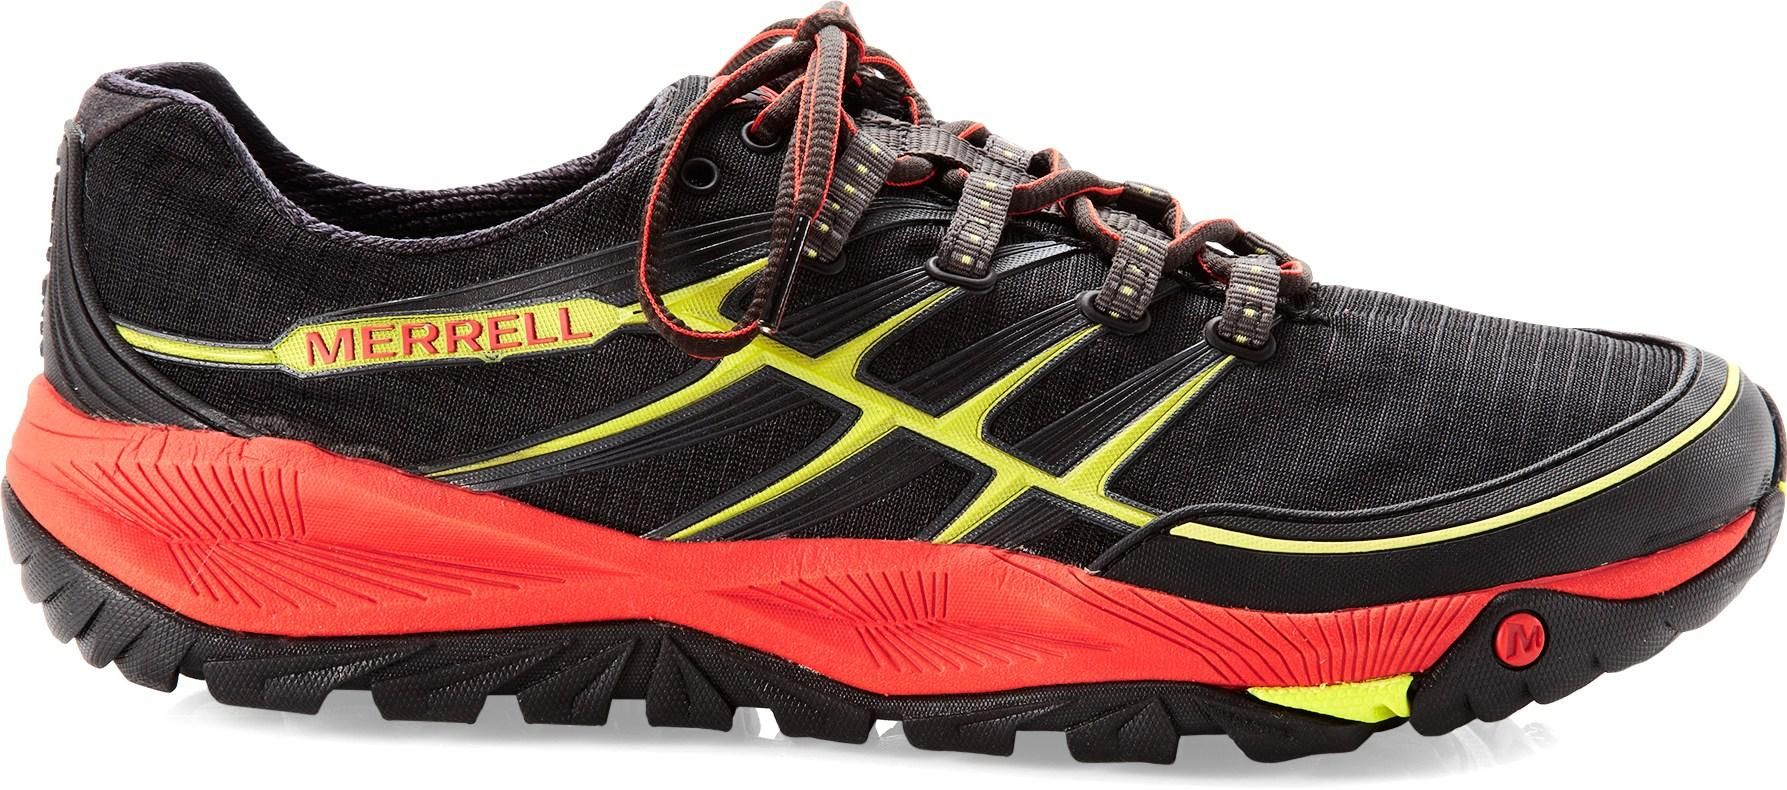 Op Run Shoes All Out Rush Merrell Running Men'sRei Co Trail zqVpGLSUM